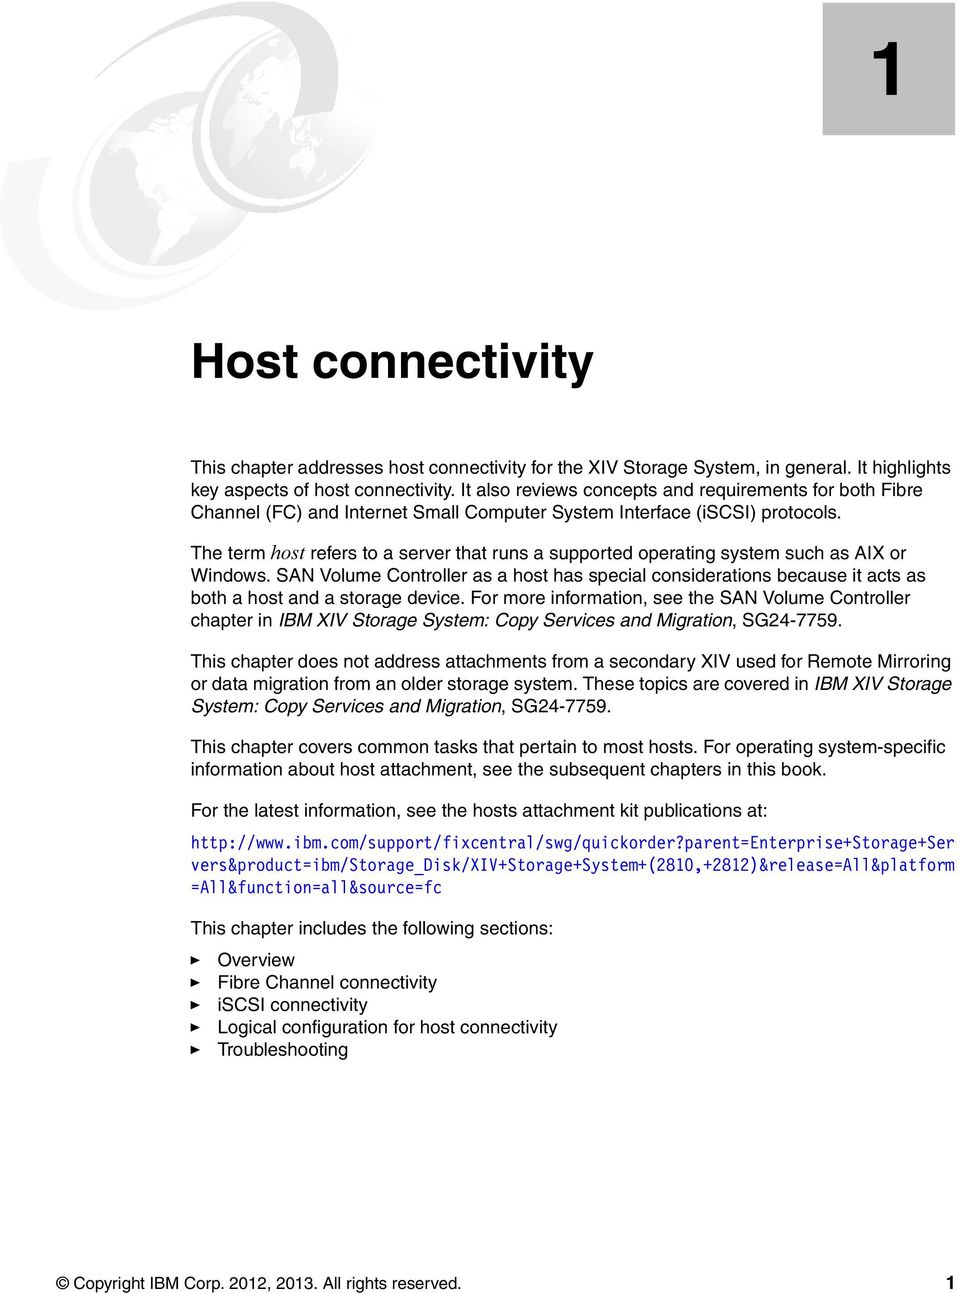 The term host refers to a server that runs a supported operating system  such as AIX